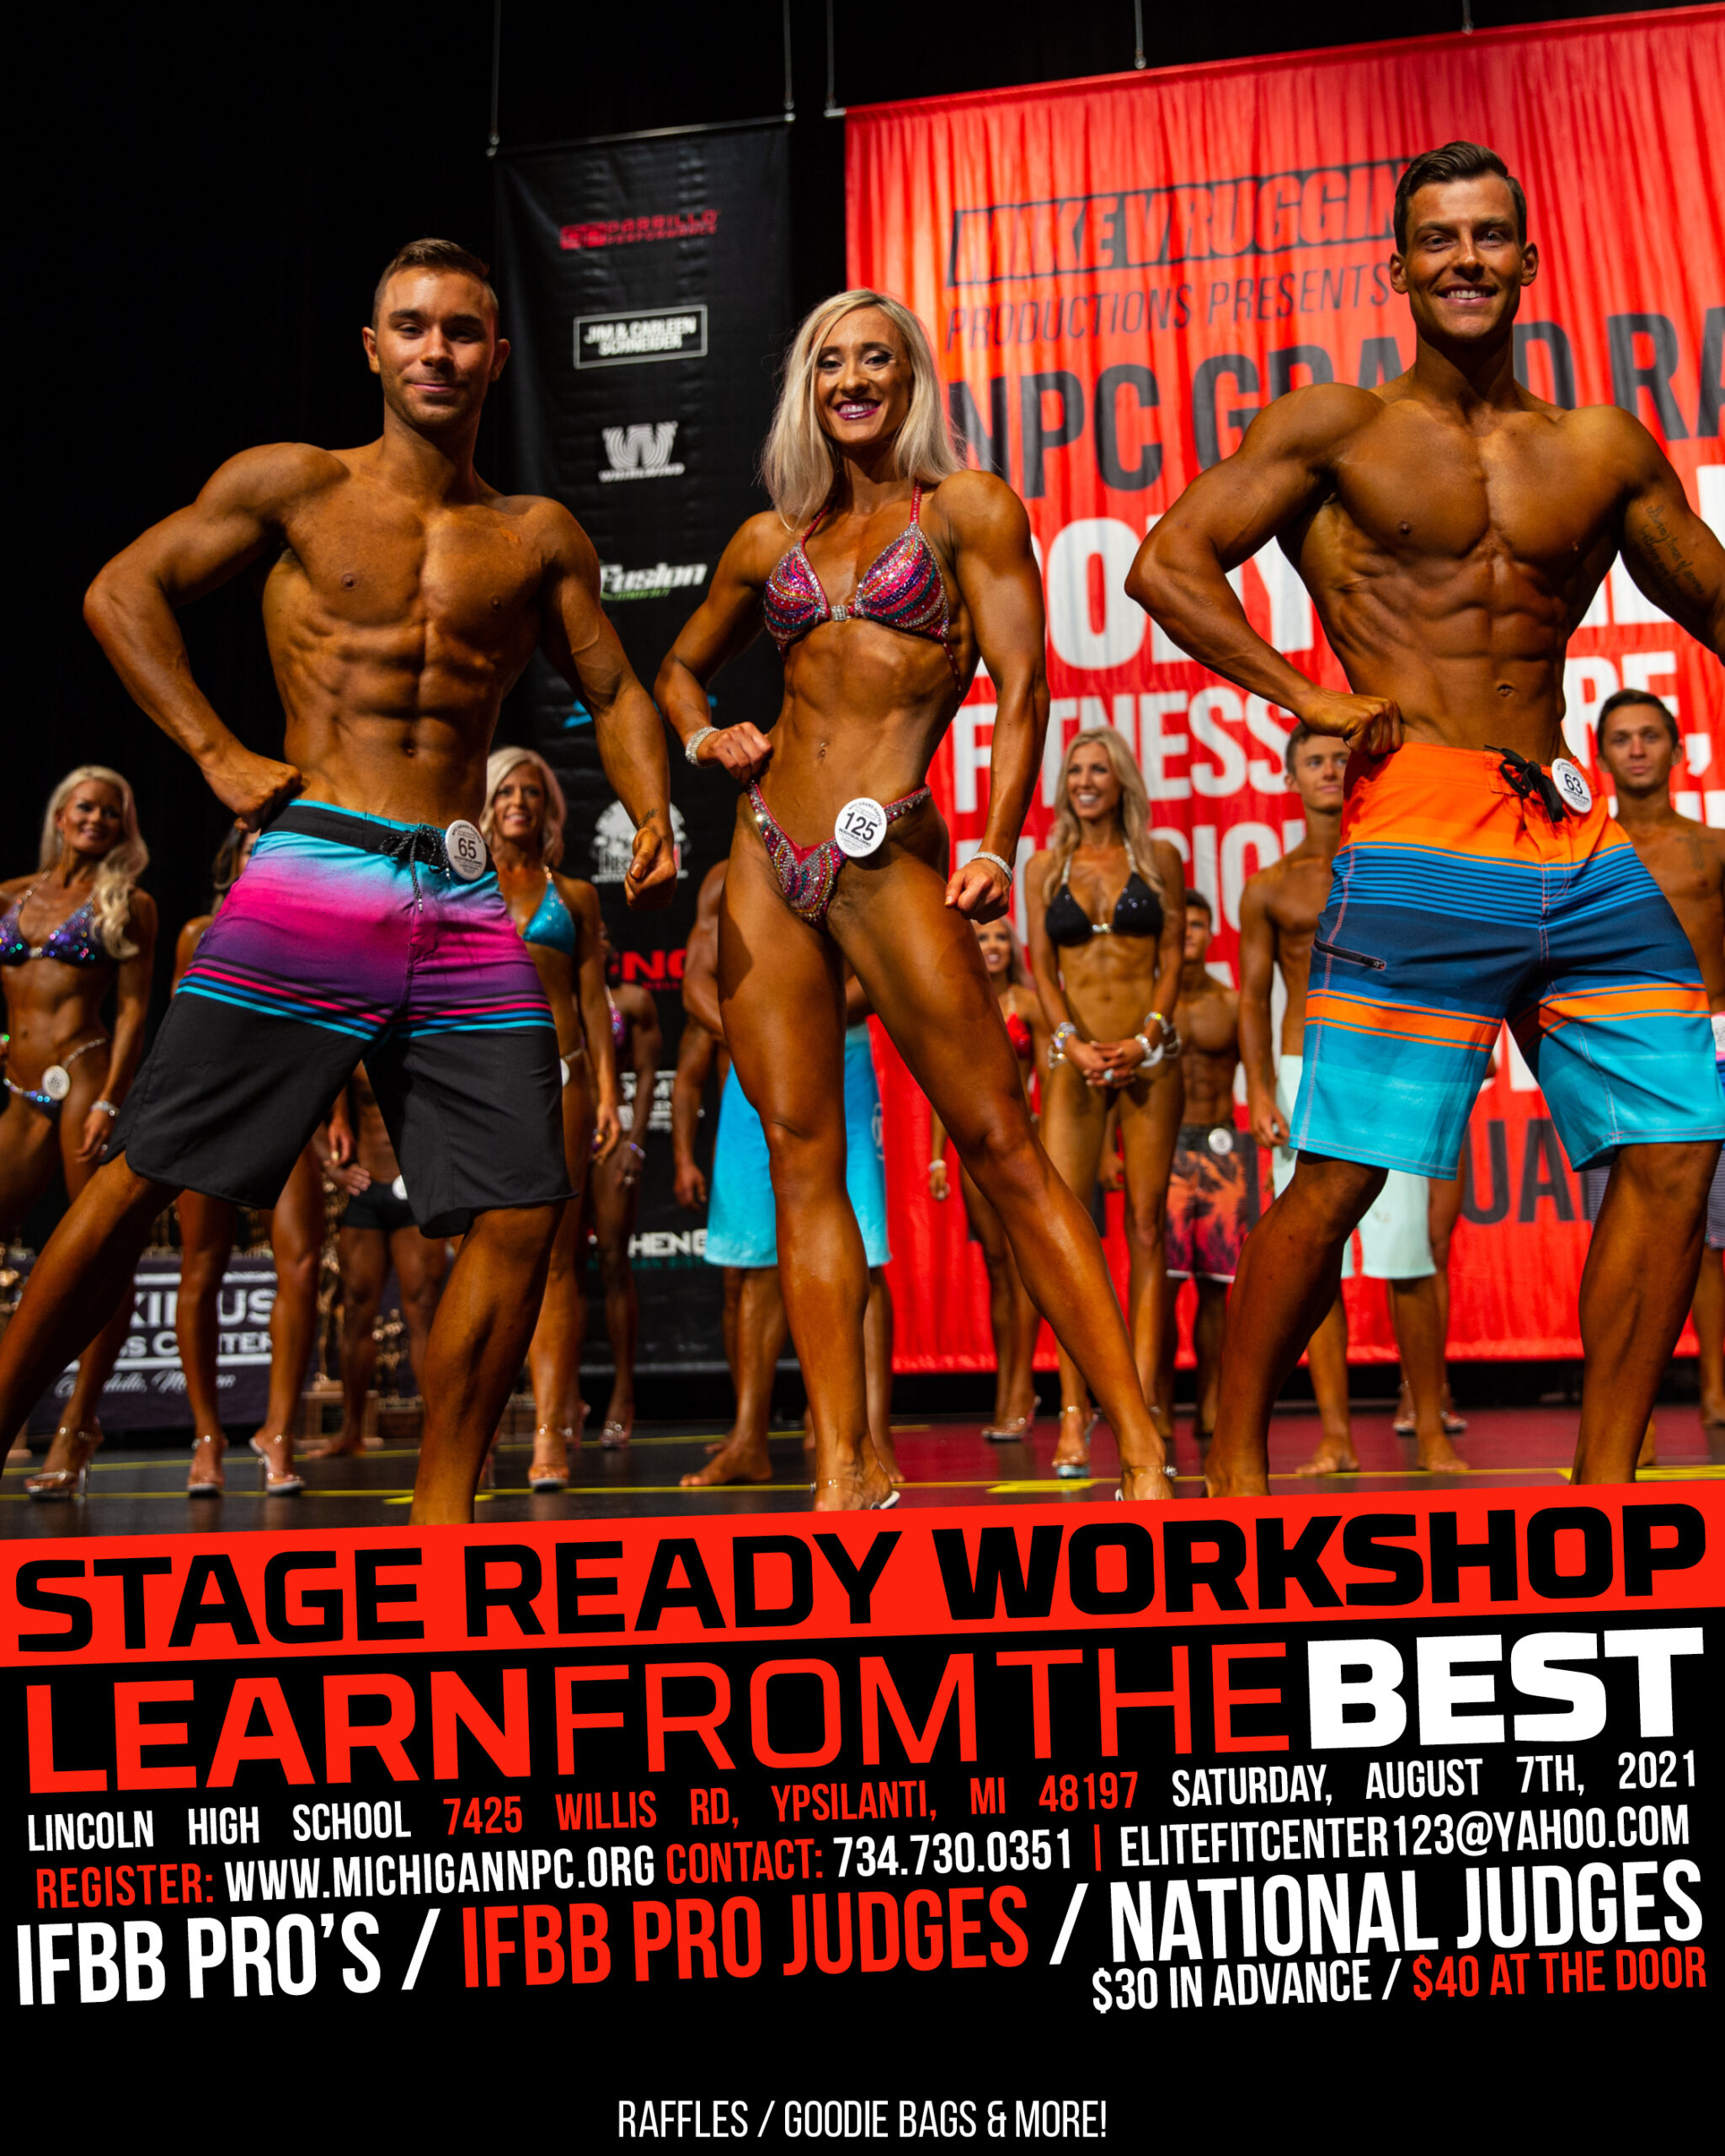 2021 Stage Ready Workshop Poster